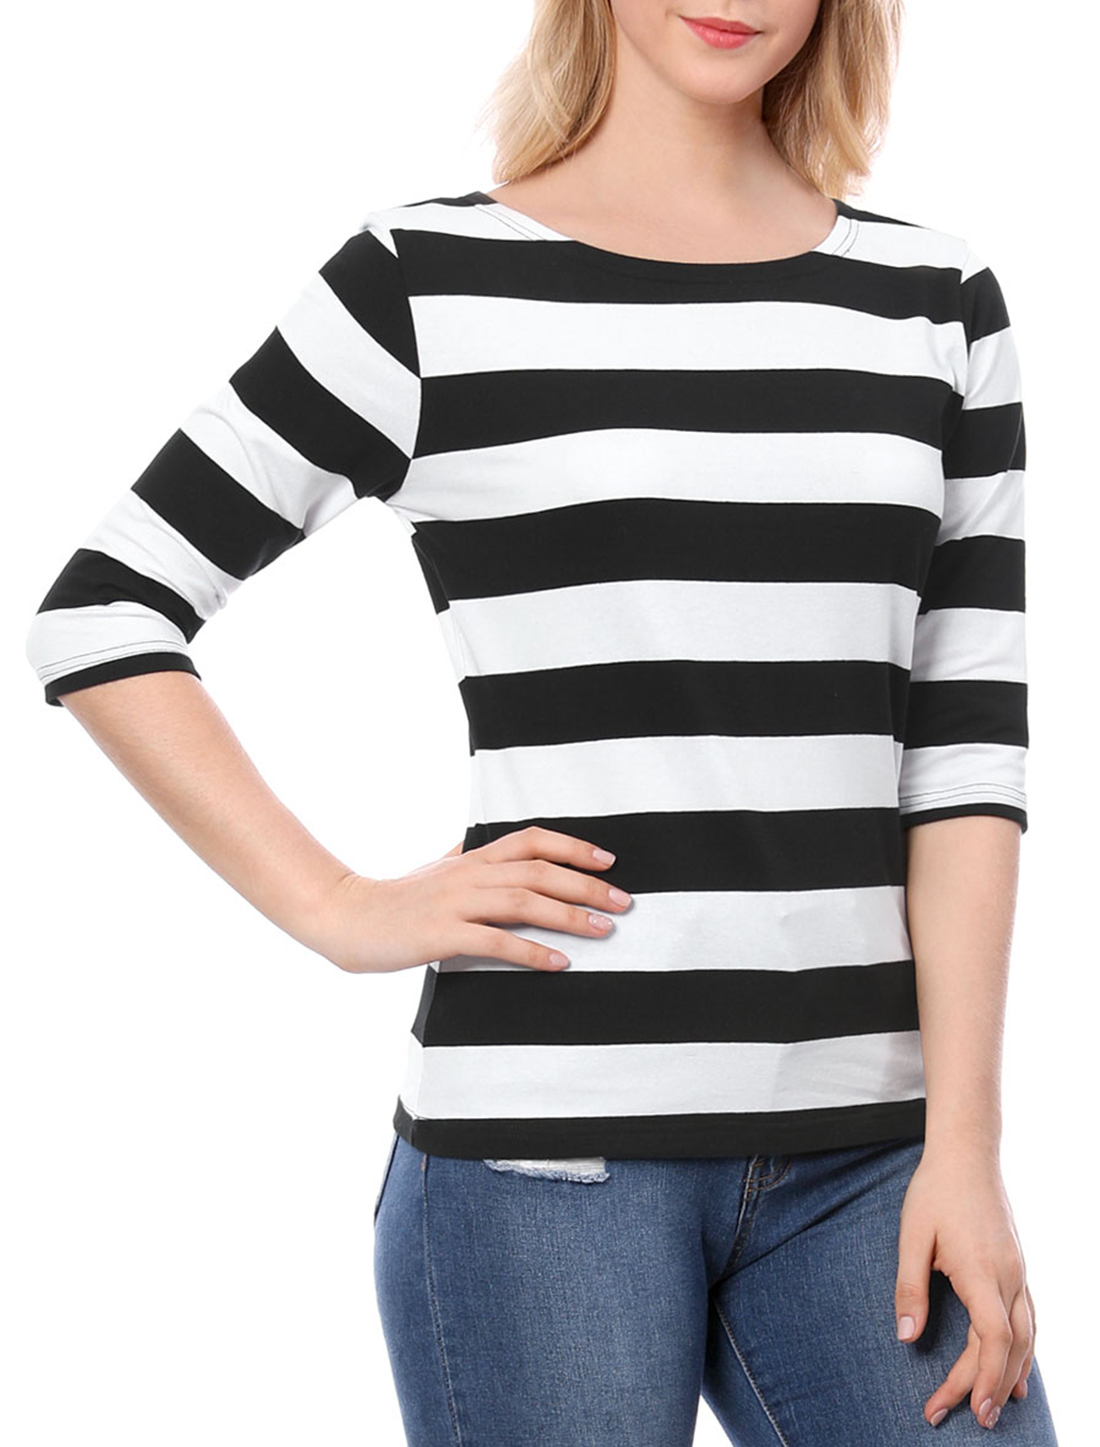 Allegra K Women's Elbow Sleeves Boat Neck Slim Fit Striped Tee Black White S